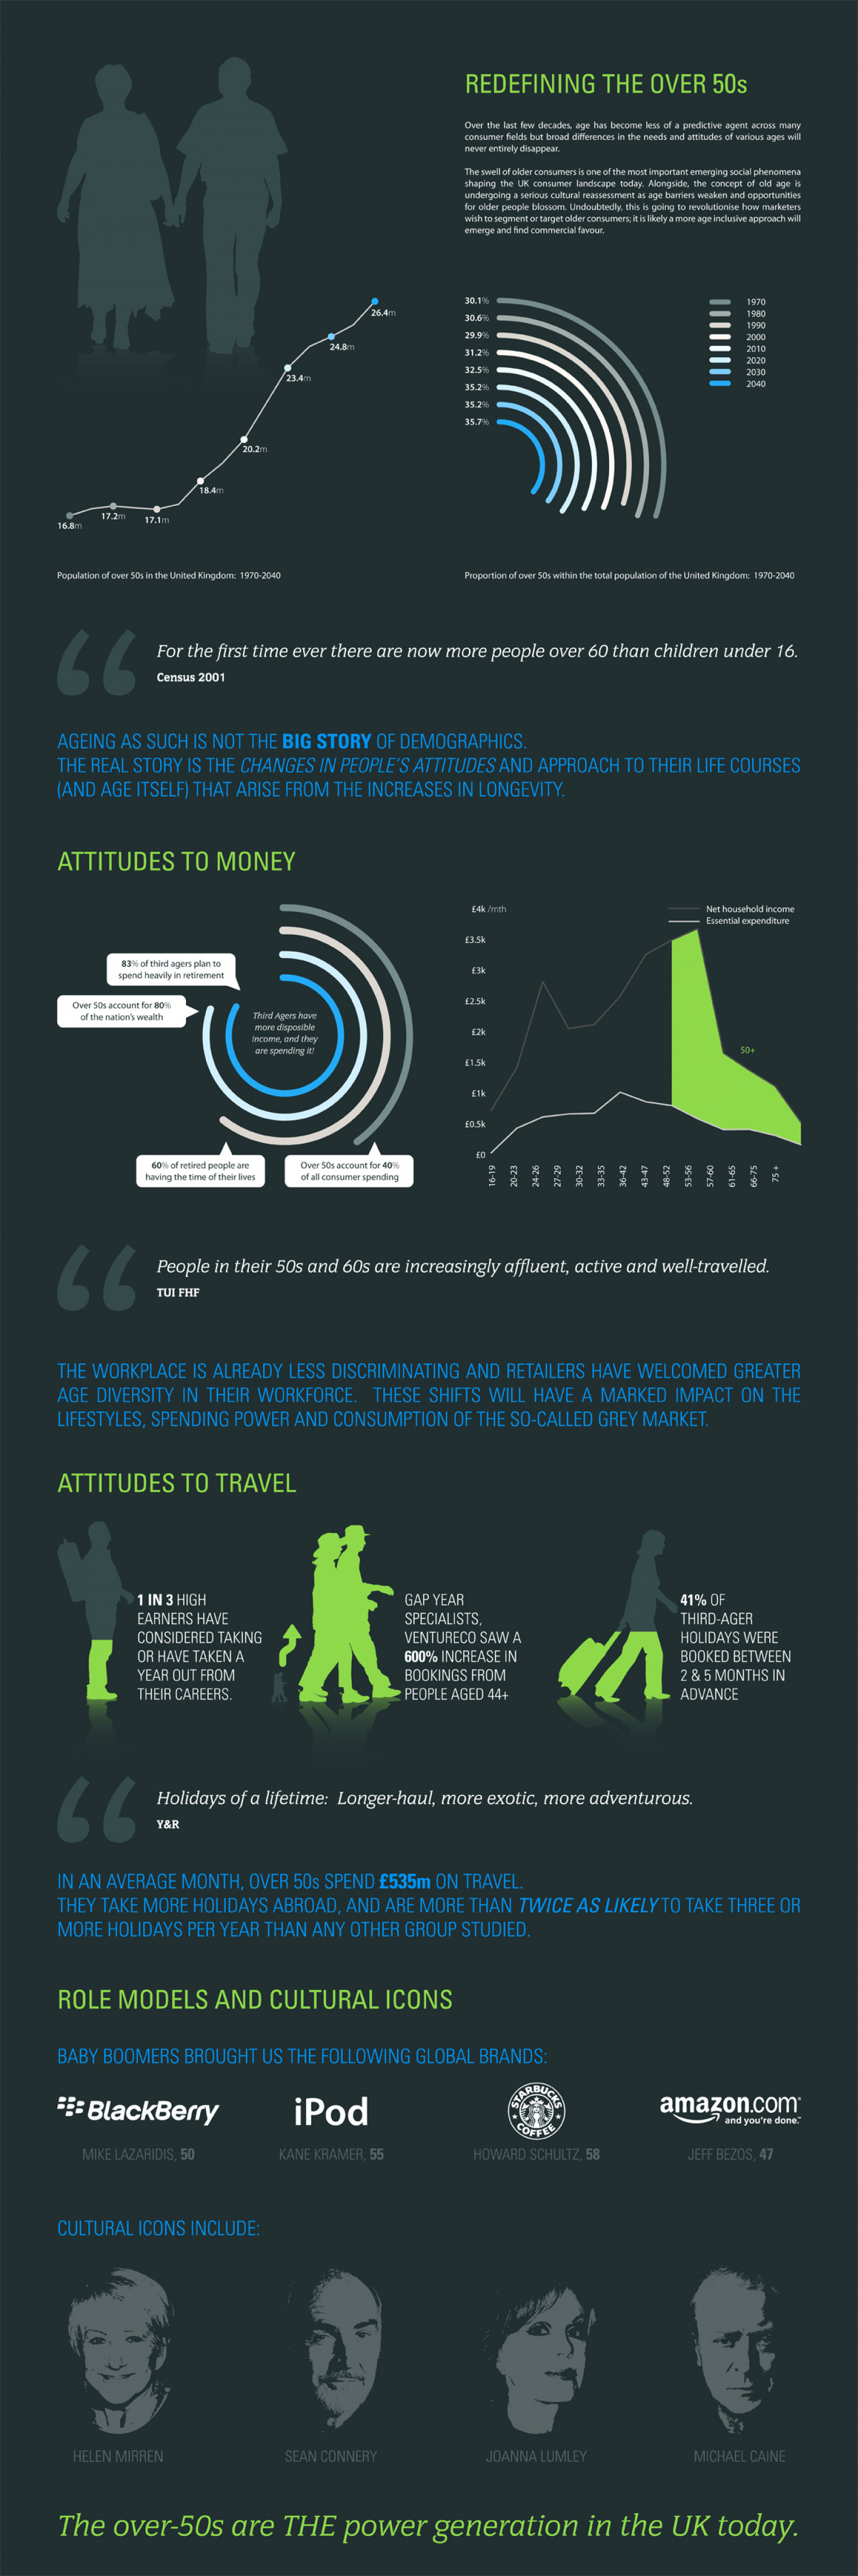 Redefining the Over 50s Infographic